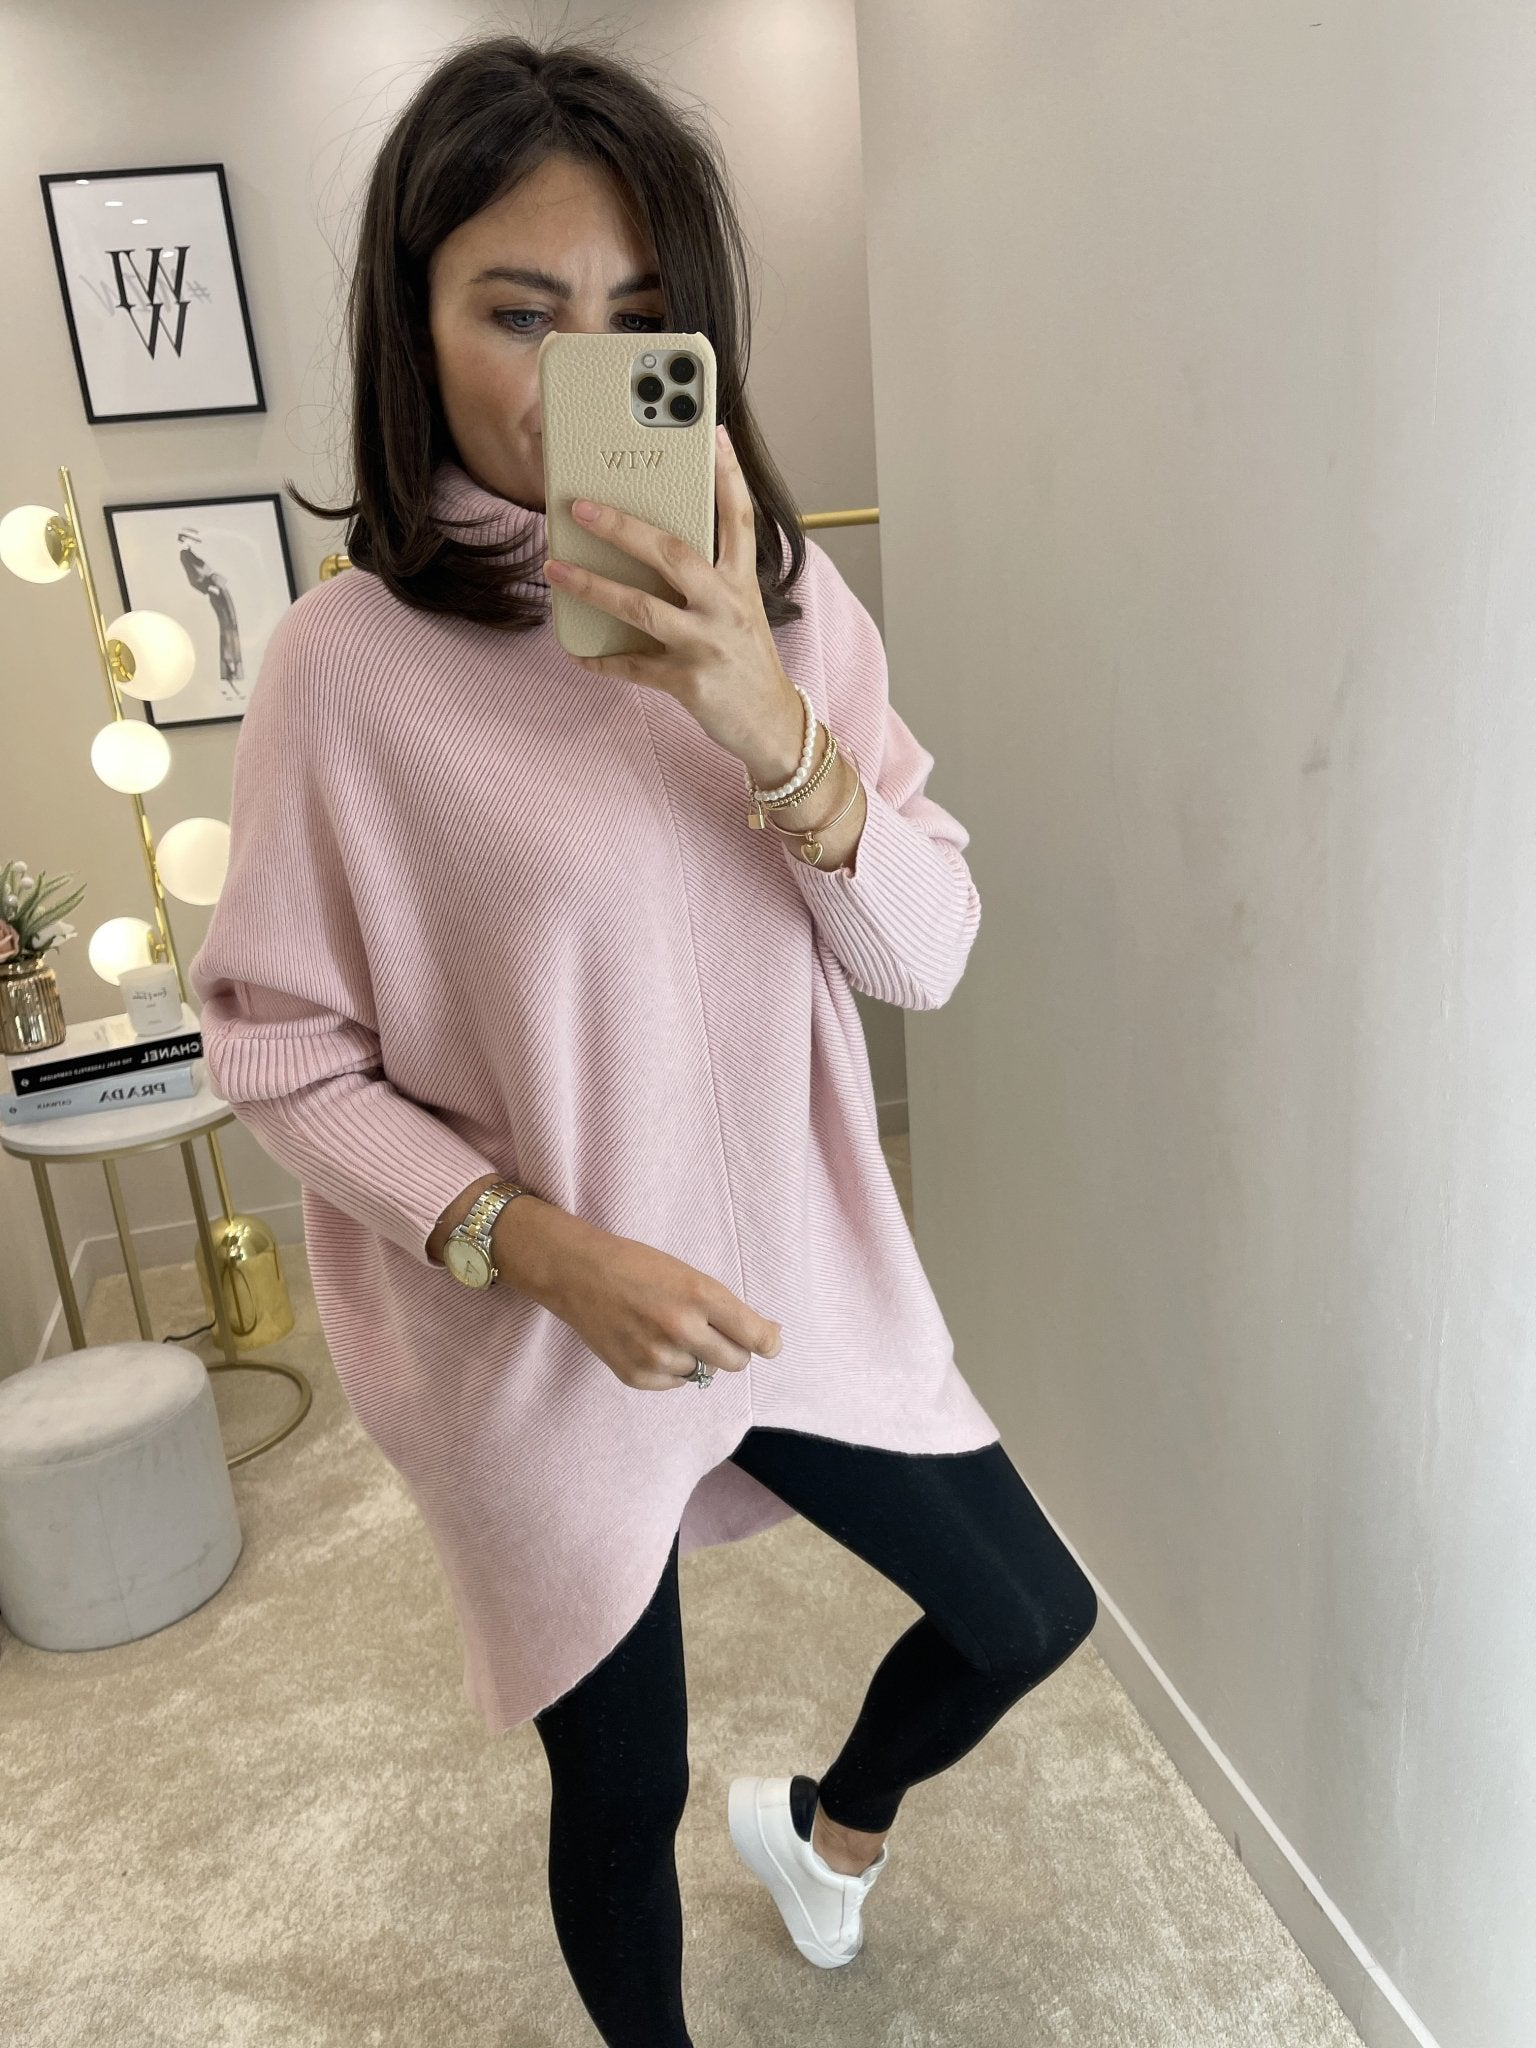 Nora Batwing Jumper Dress In Soft Pink - The Walk in Wardrobe